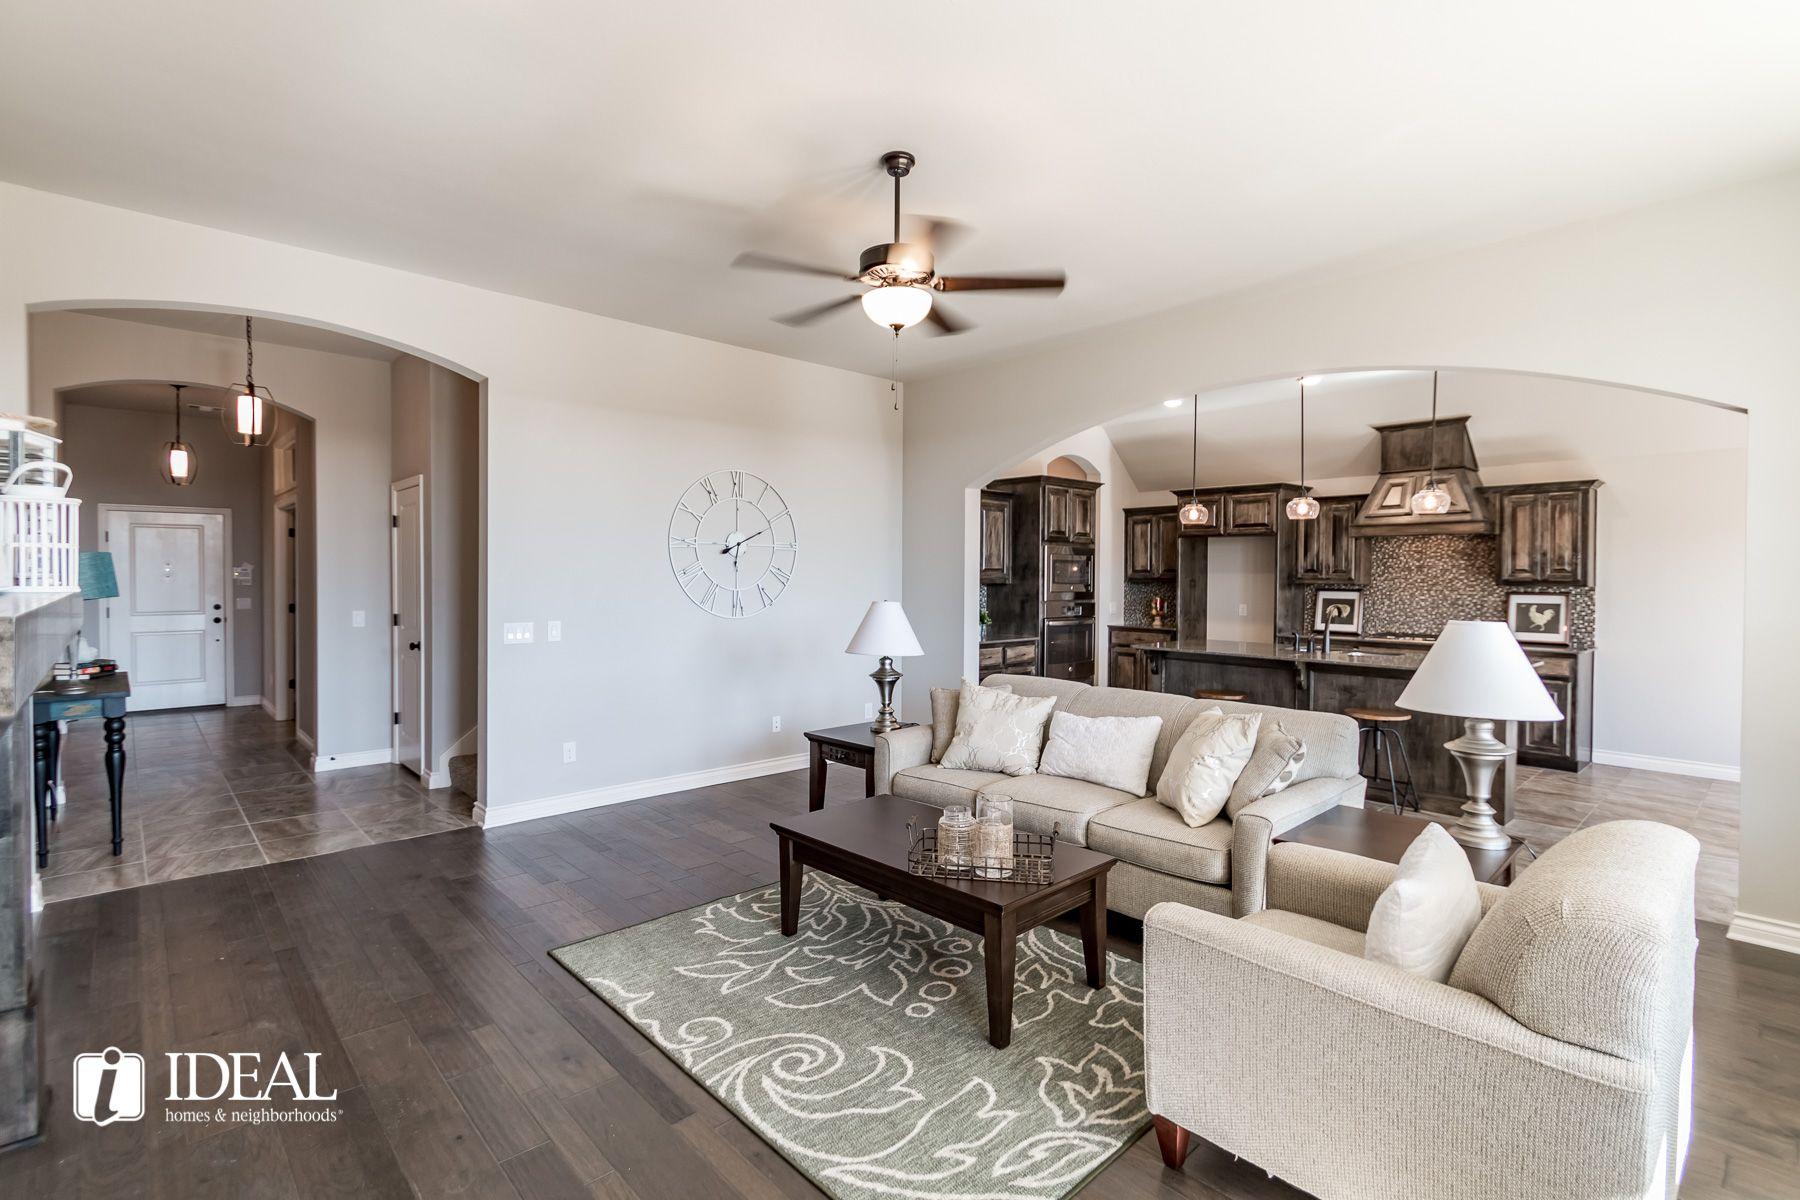 Living Area featured in the Stafford By Ideal Homes in Oklahoma City, OK